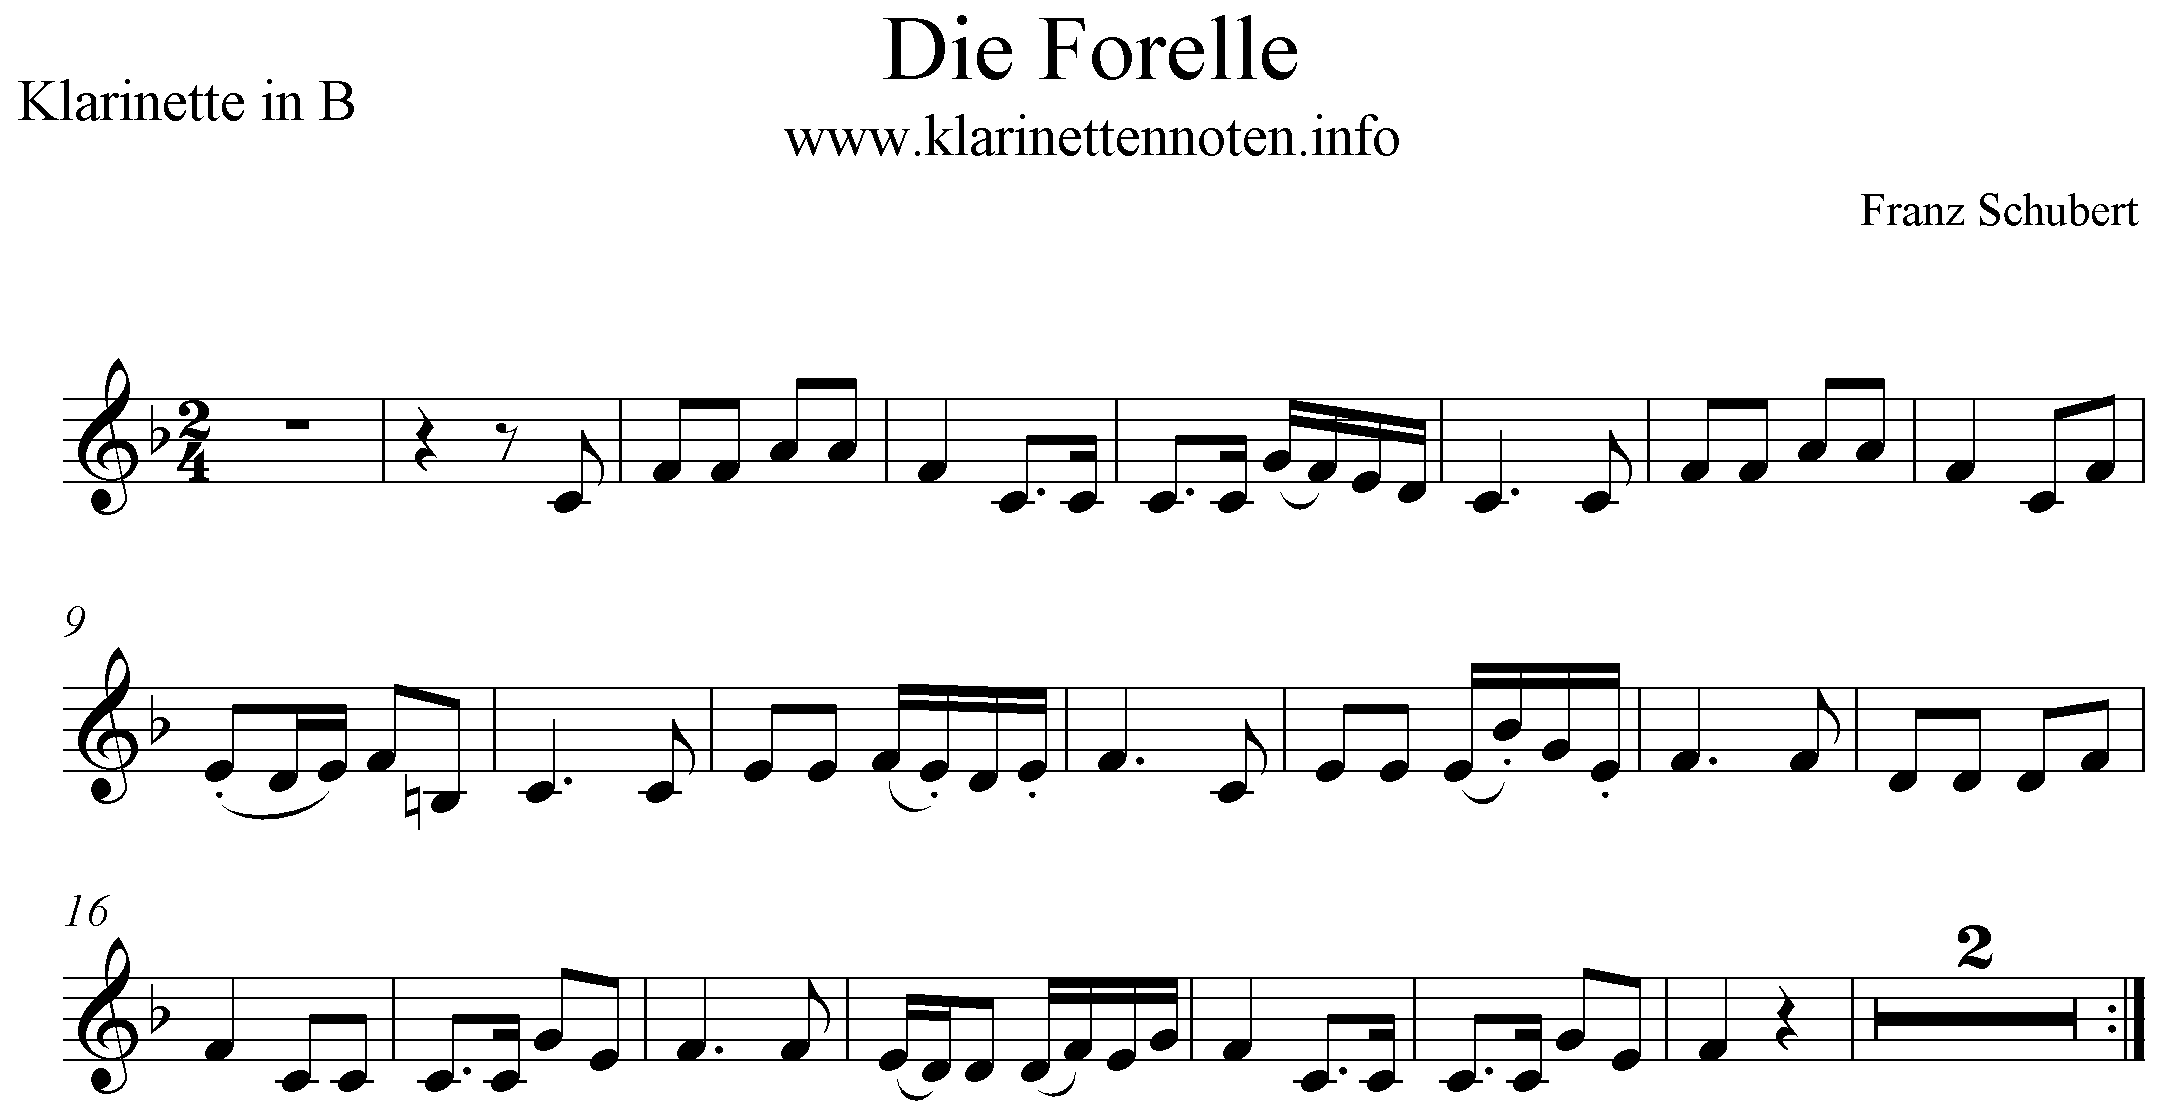 Die Forelle freesheet for Clarinet, Noten Klarinette